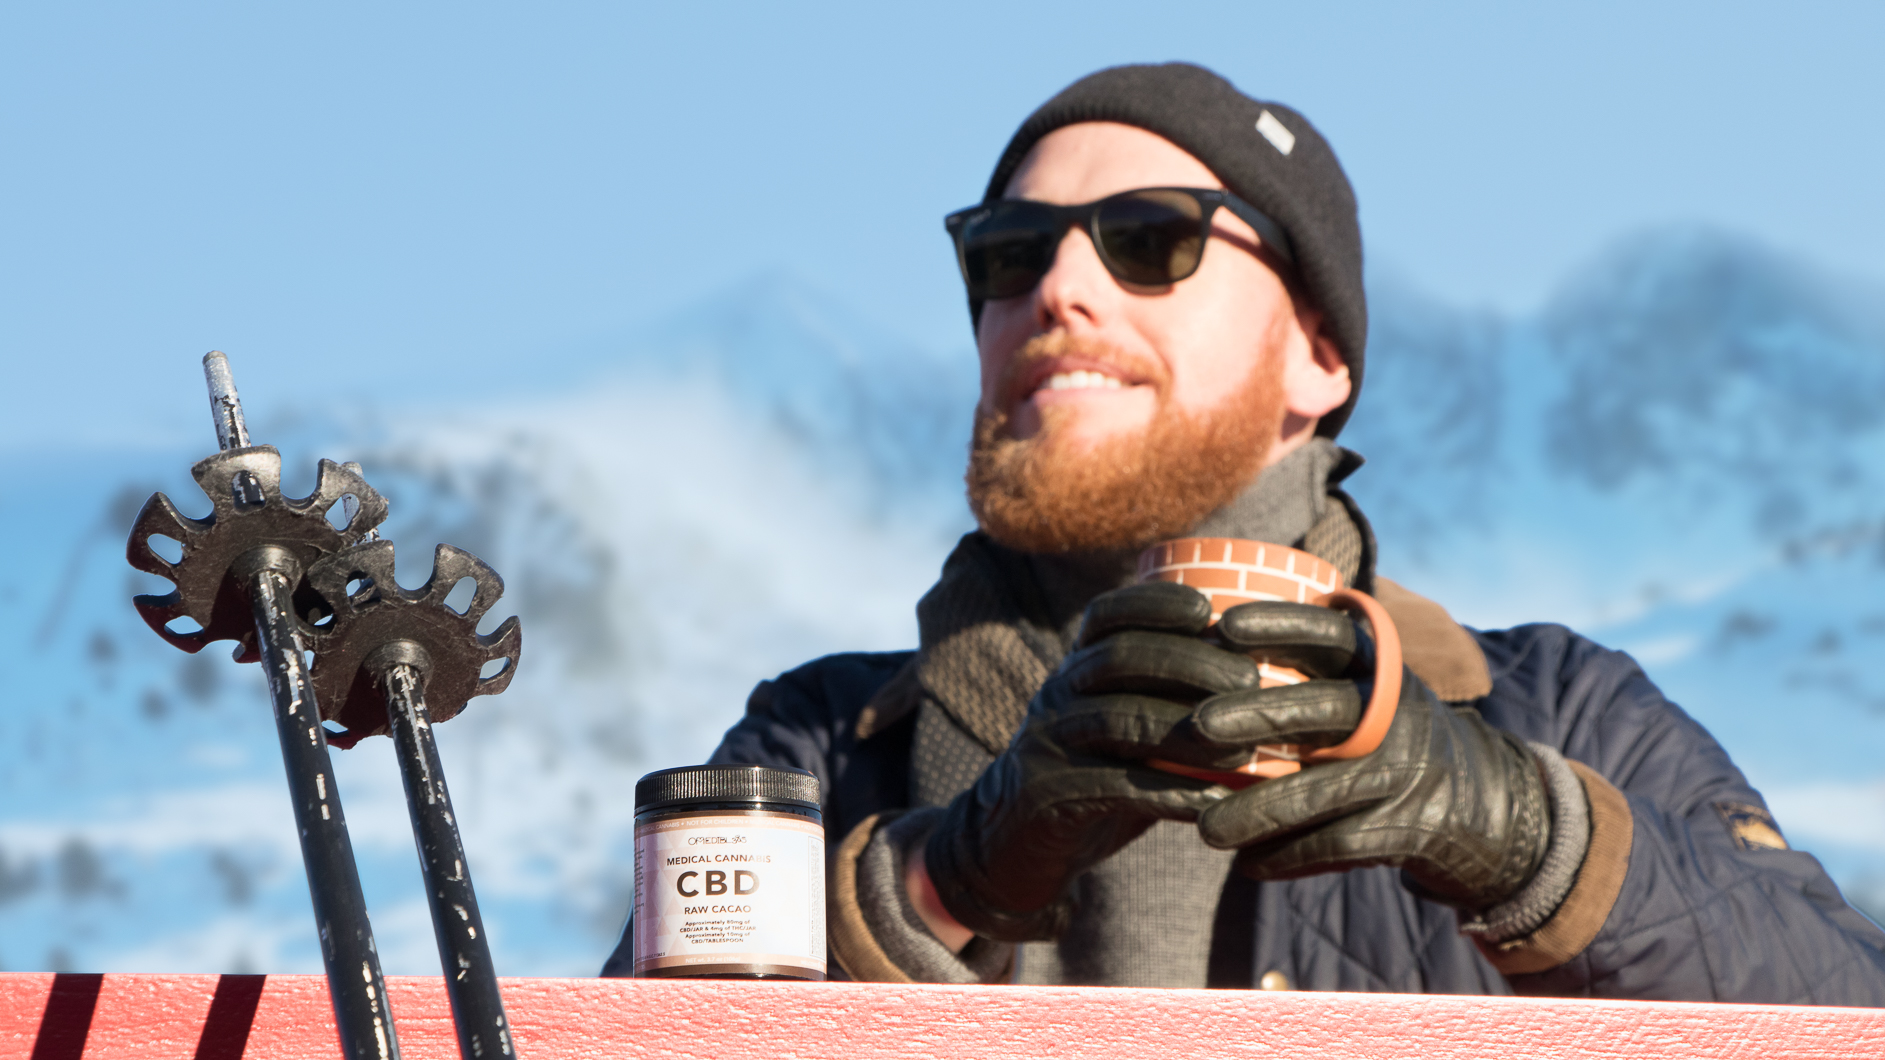 Image of a man at a ski resort enjoying a mug of cannabis-infused hot chocolate.